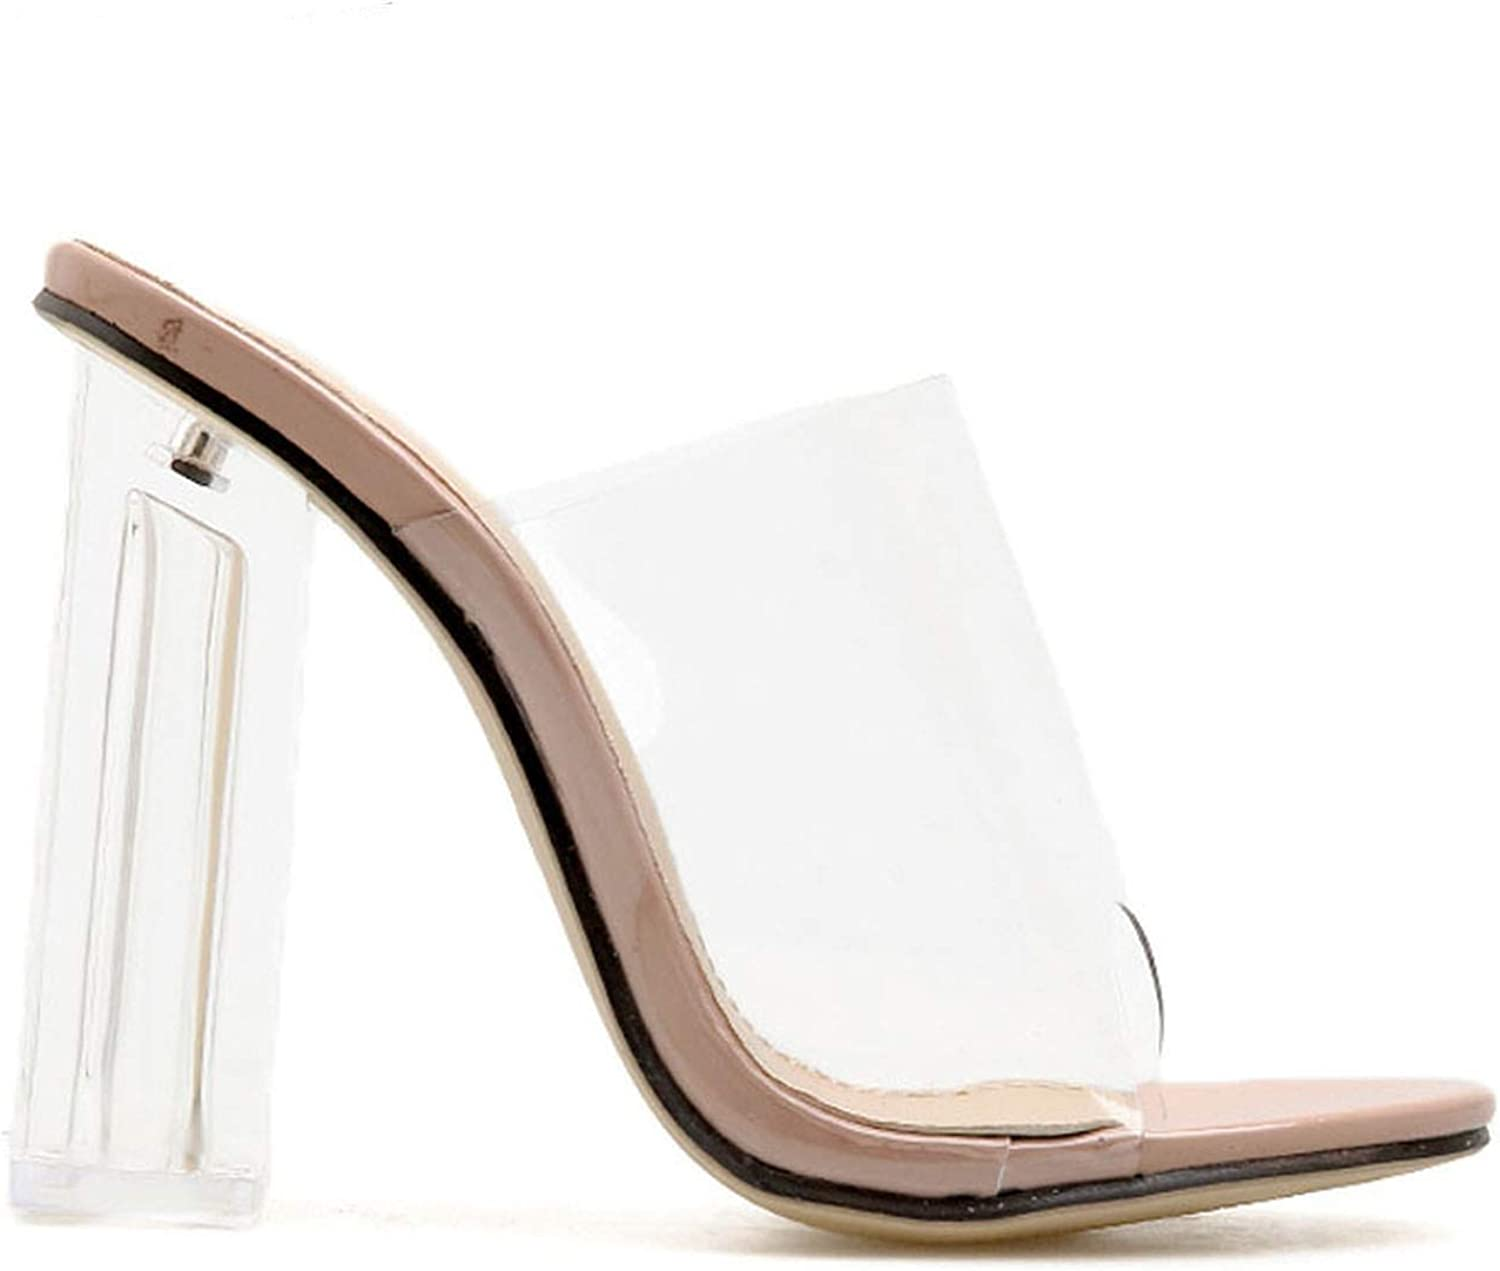 JIESENGTOO Transparent Sandals Women High Heels Summer Party shoes PVC Slip On Square Heels